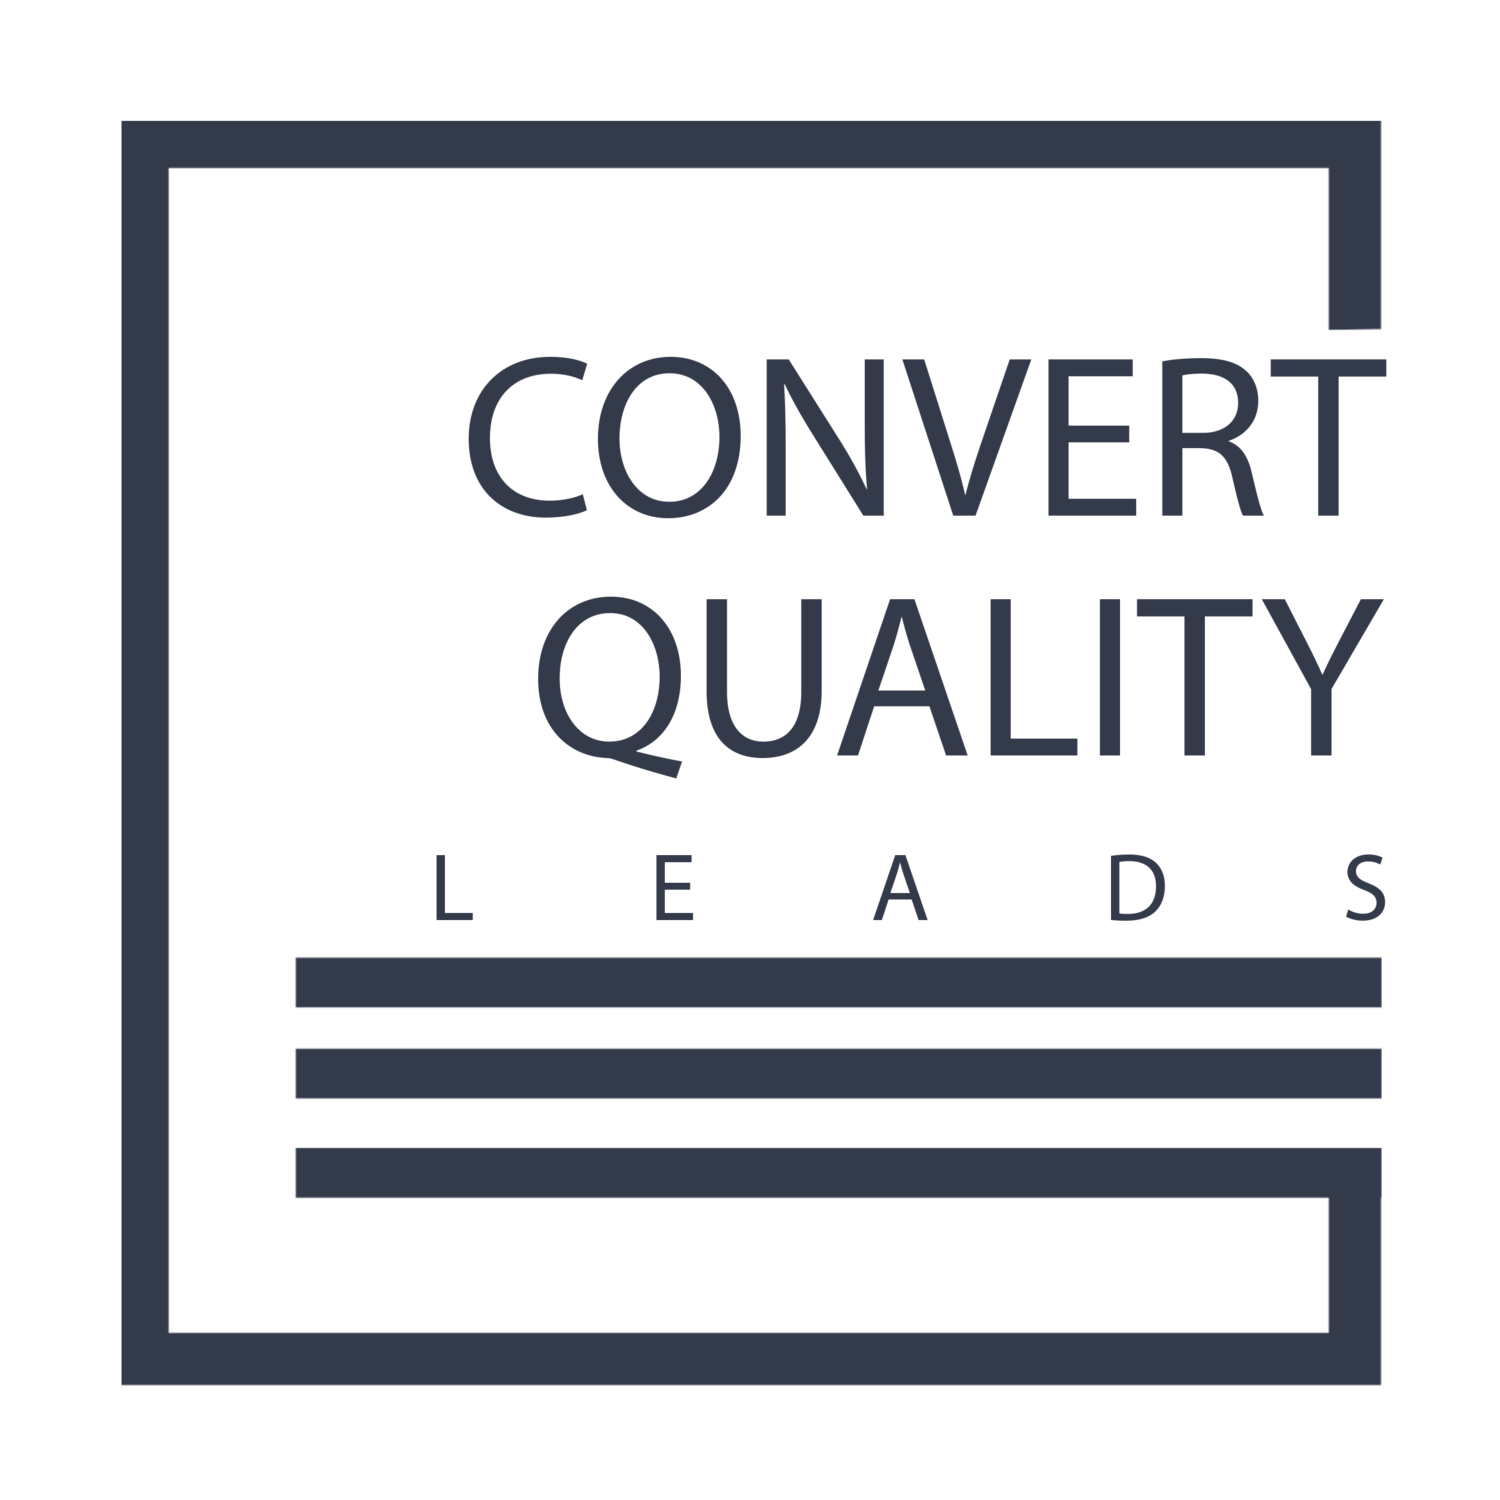 Convert Quality Leads